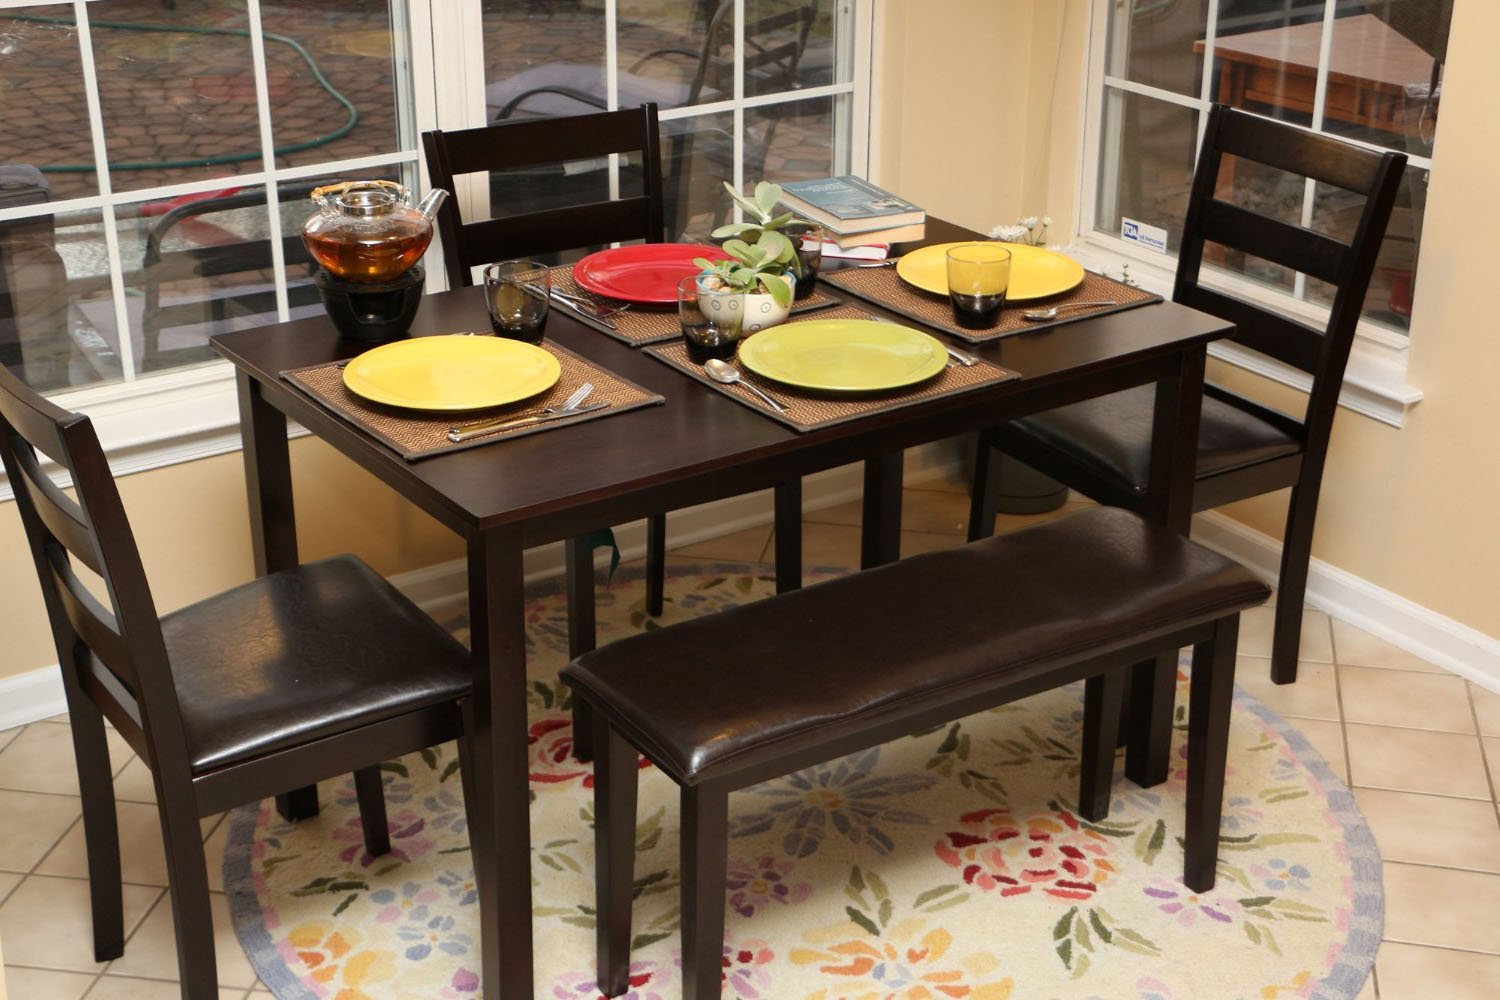 Amazon.com - 5pc Dining Dinette Table Chairs & Bench Set Espresso ...